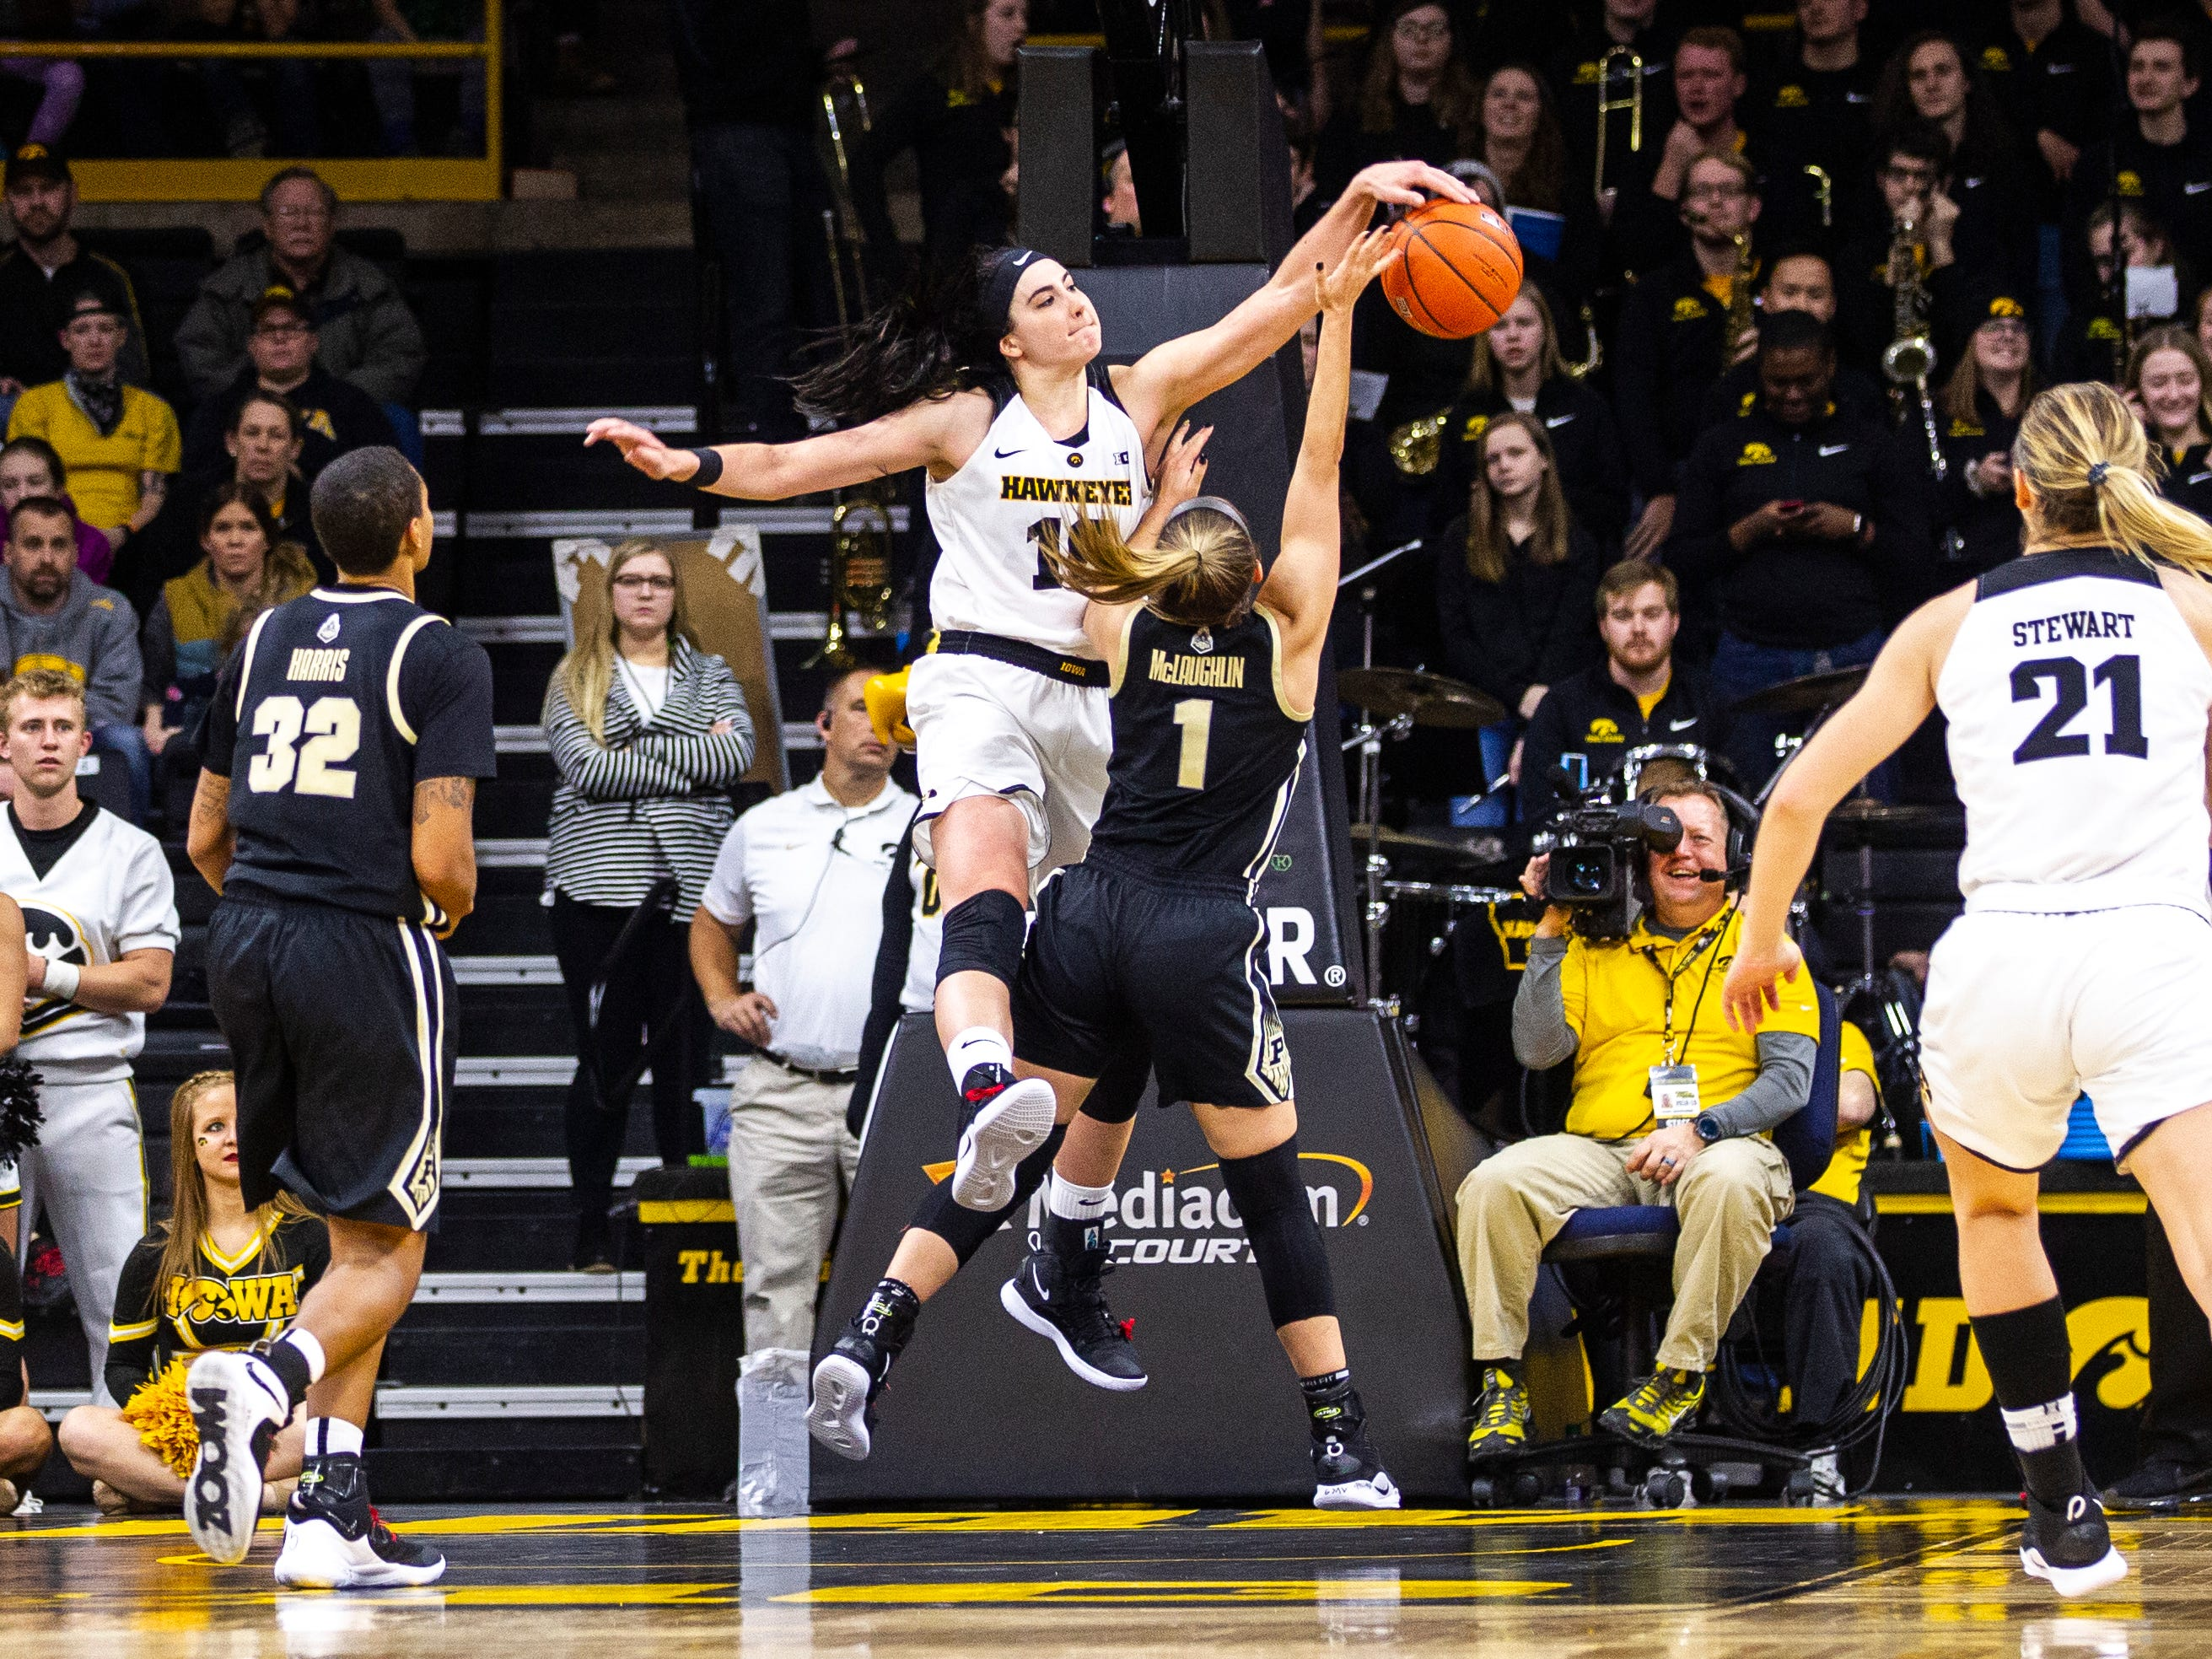 Iowa center Megan Gustafson (10) blocks Purdue guard Karissa McLaughlin (1) during a NCAA Big Ten Conference women's basketball game on Sunday, Jan. 27, 2019, at Carver-Hawkeye Arena in Iowa City, Iowa.